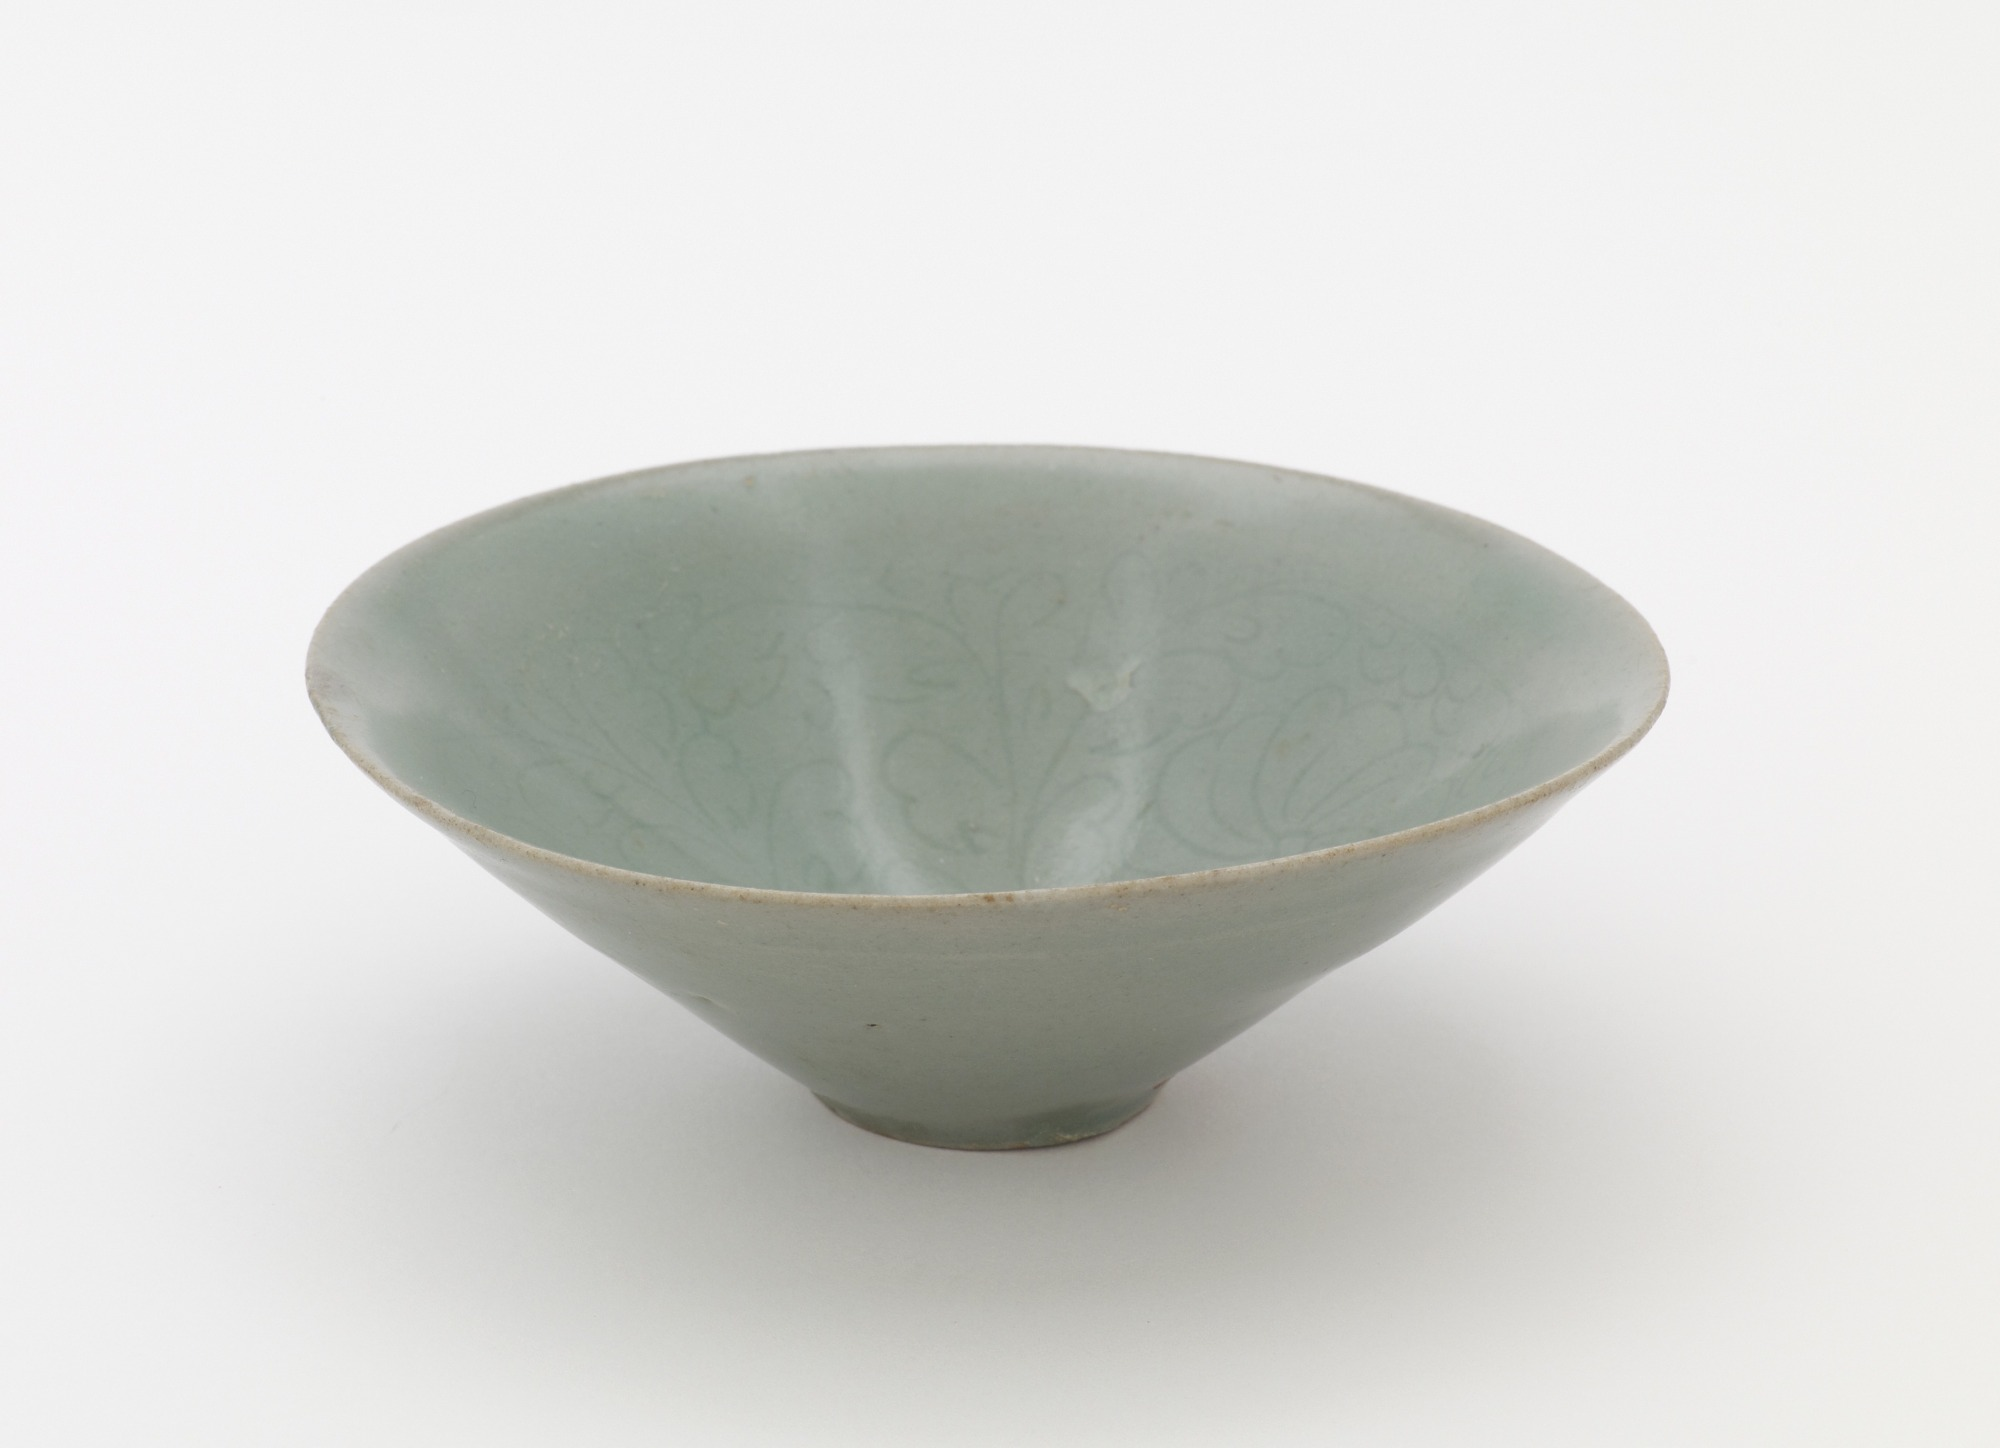 Bowl with incised design of chrysanthemums, 3/4 profile